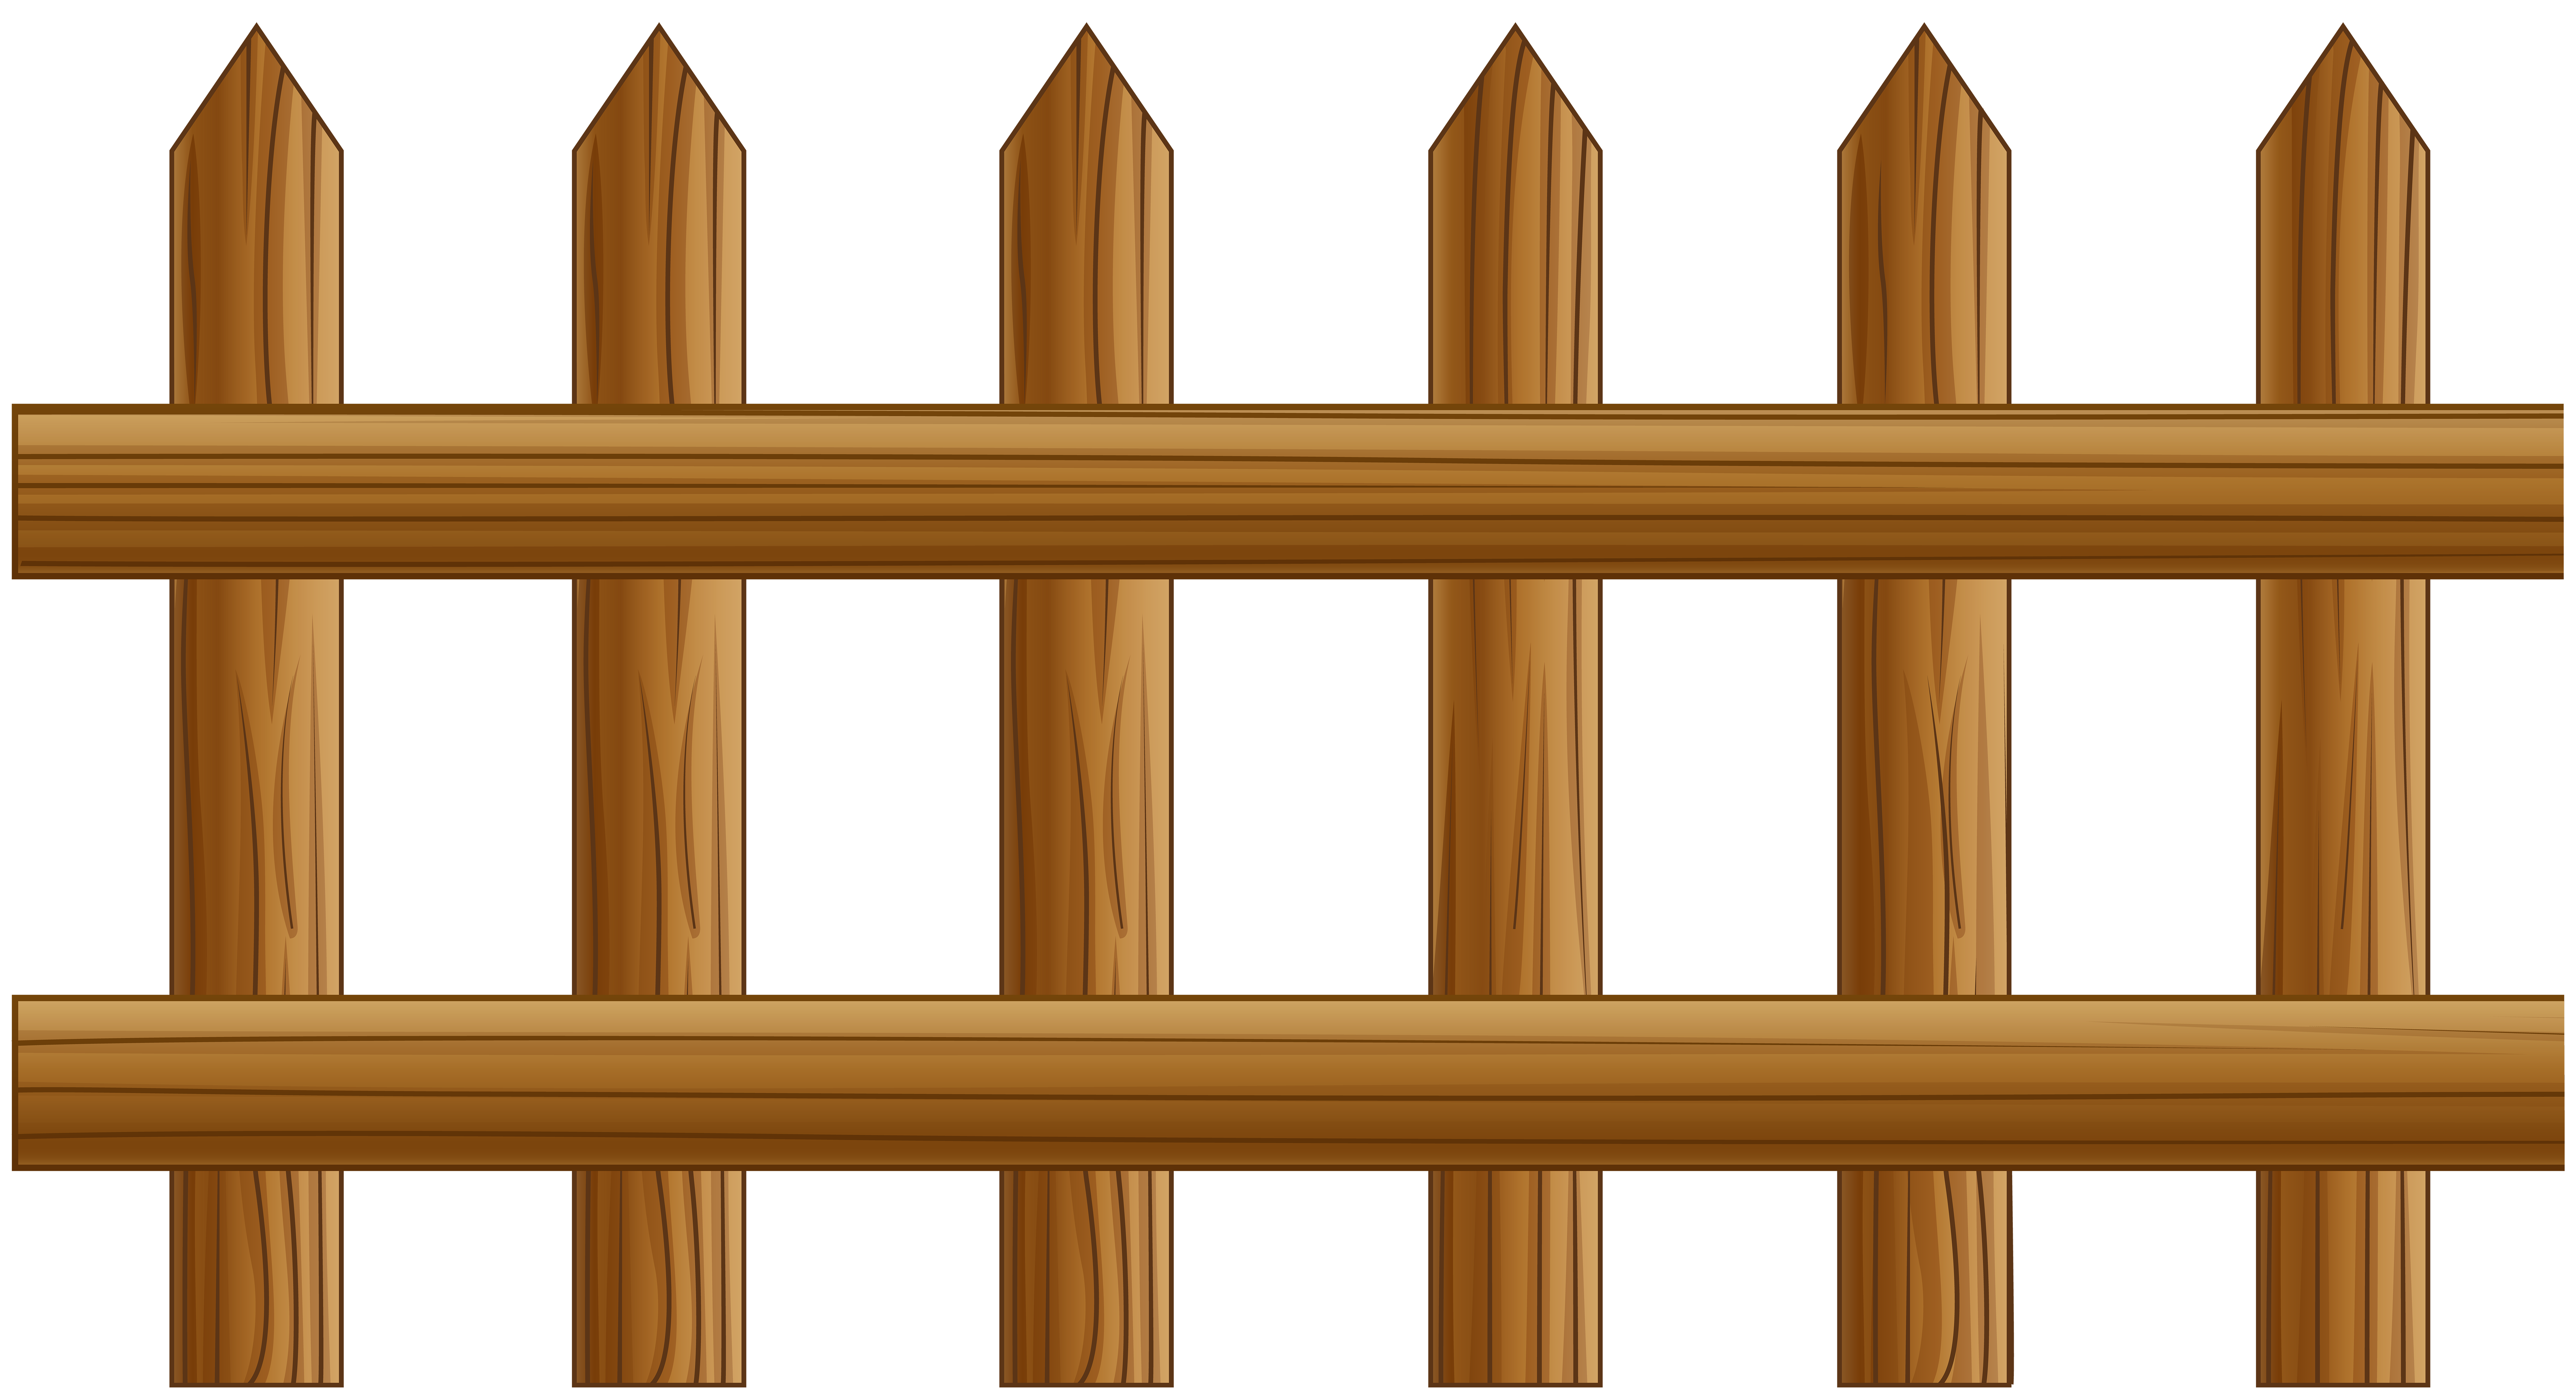 banner transparent library Clip art png image. Fence clipart.